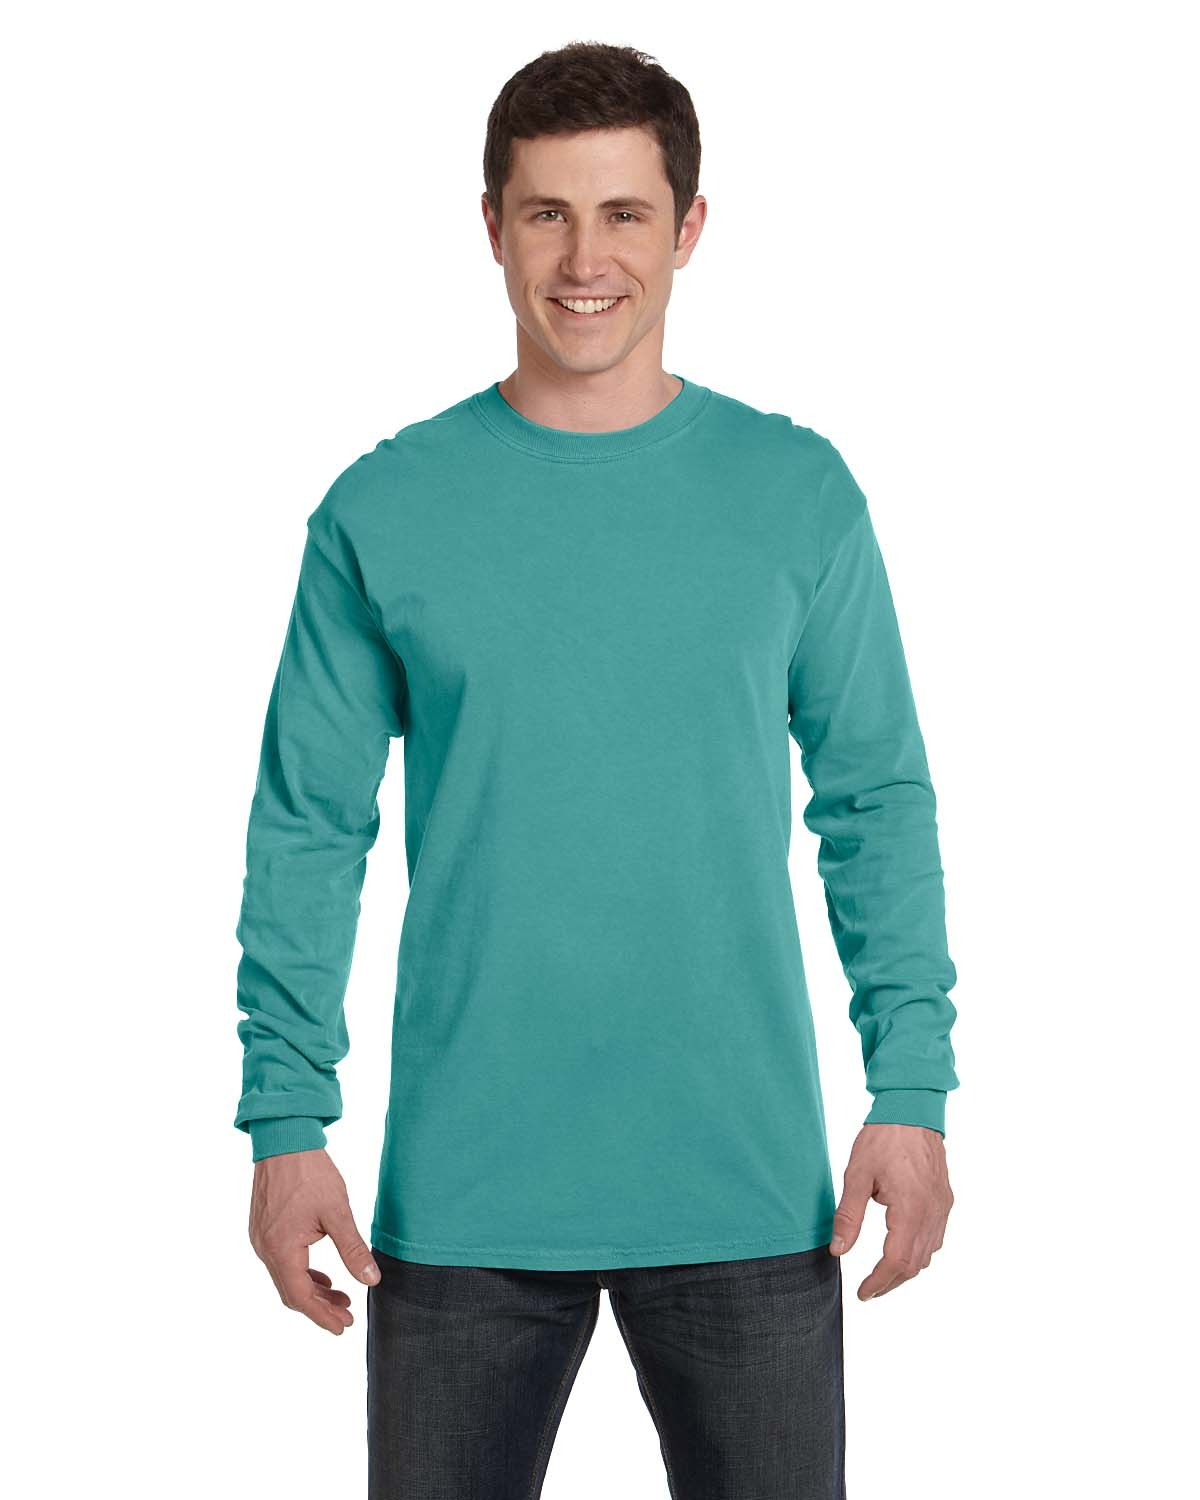 C6014 Comfort Colors SEAFOAM